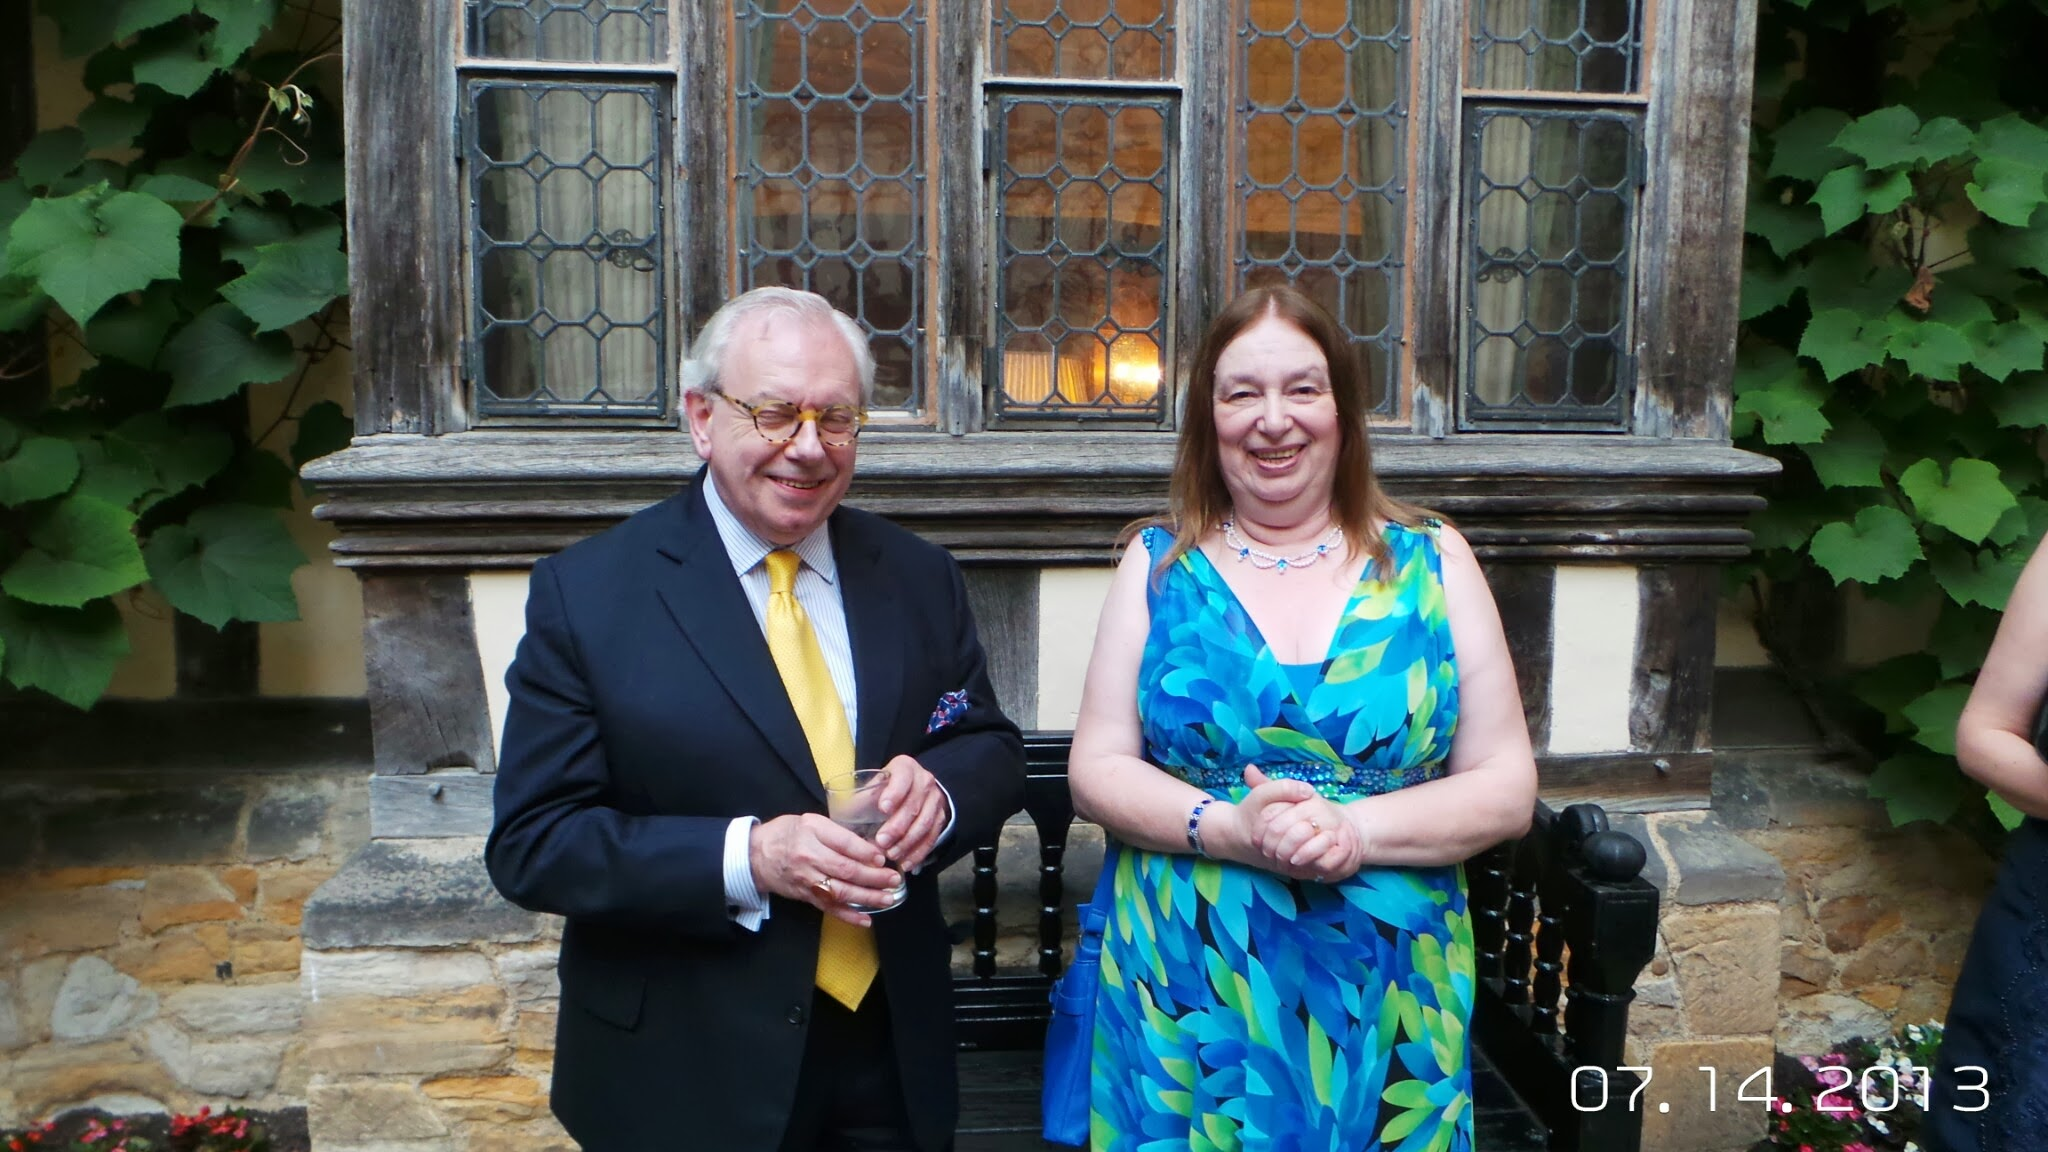 Alison Weir and David Starkey at Hever Castle